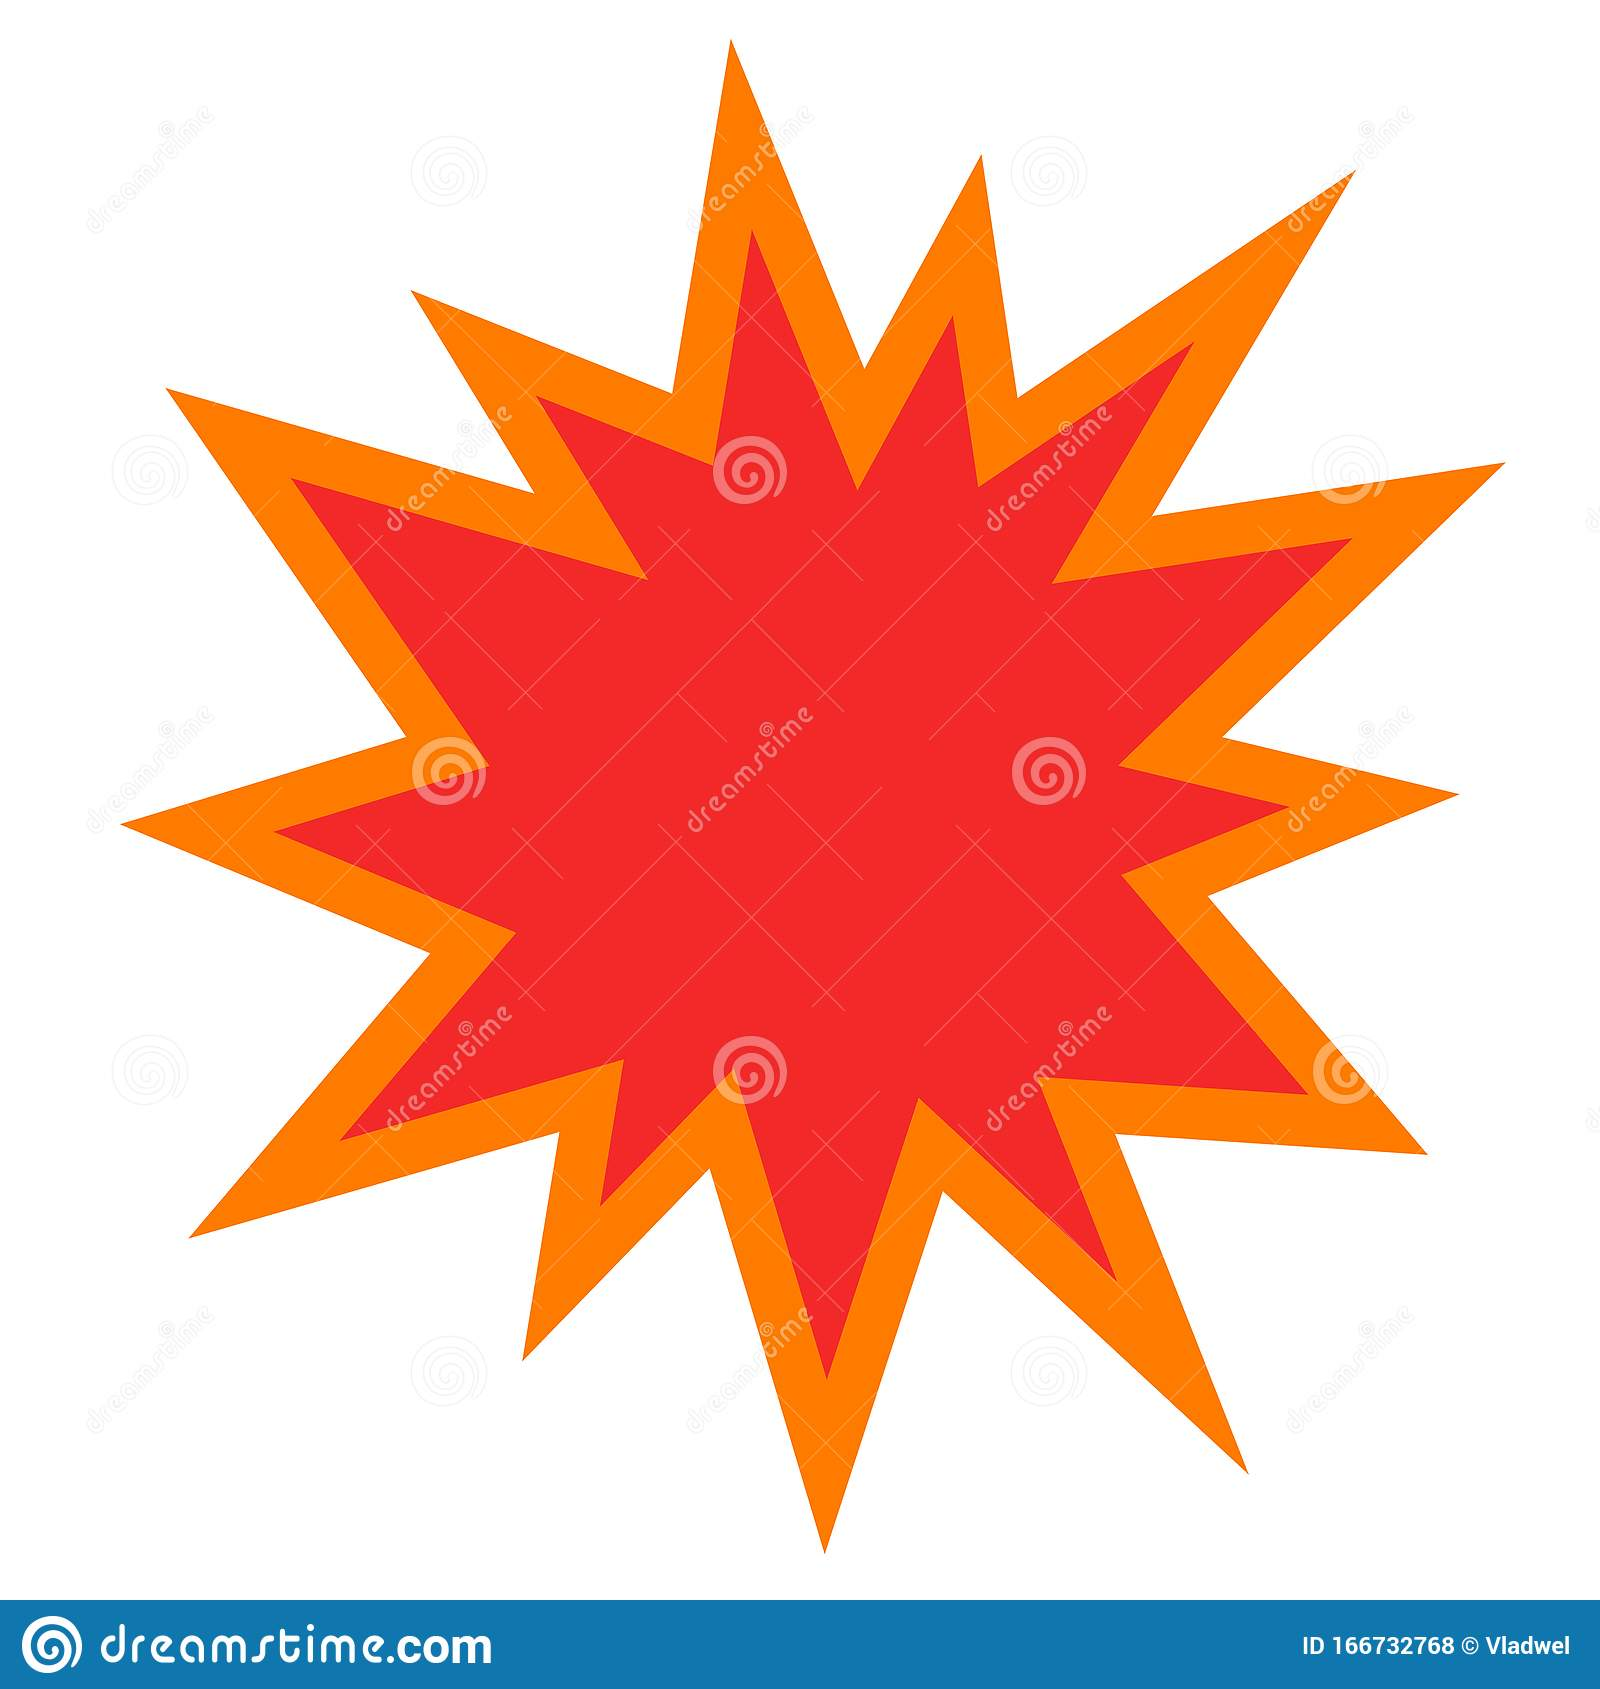 explosion or bomb blast vector icon flat cartoon design comic empty burst or blank flash isolated on white background stock vector illustration of blast abstract 166732768 https www dreamstime com explosion bomb blast vector icon flat cartoon design comic empty burst blank flash isolated white background clipart image166732768